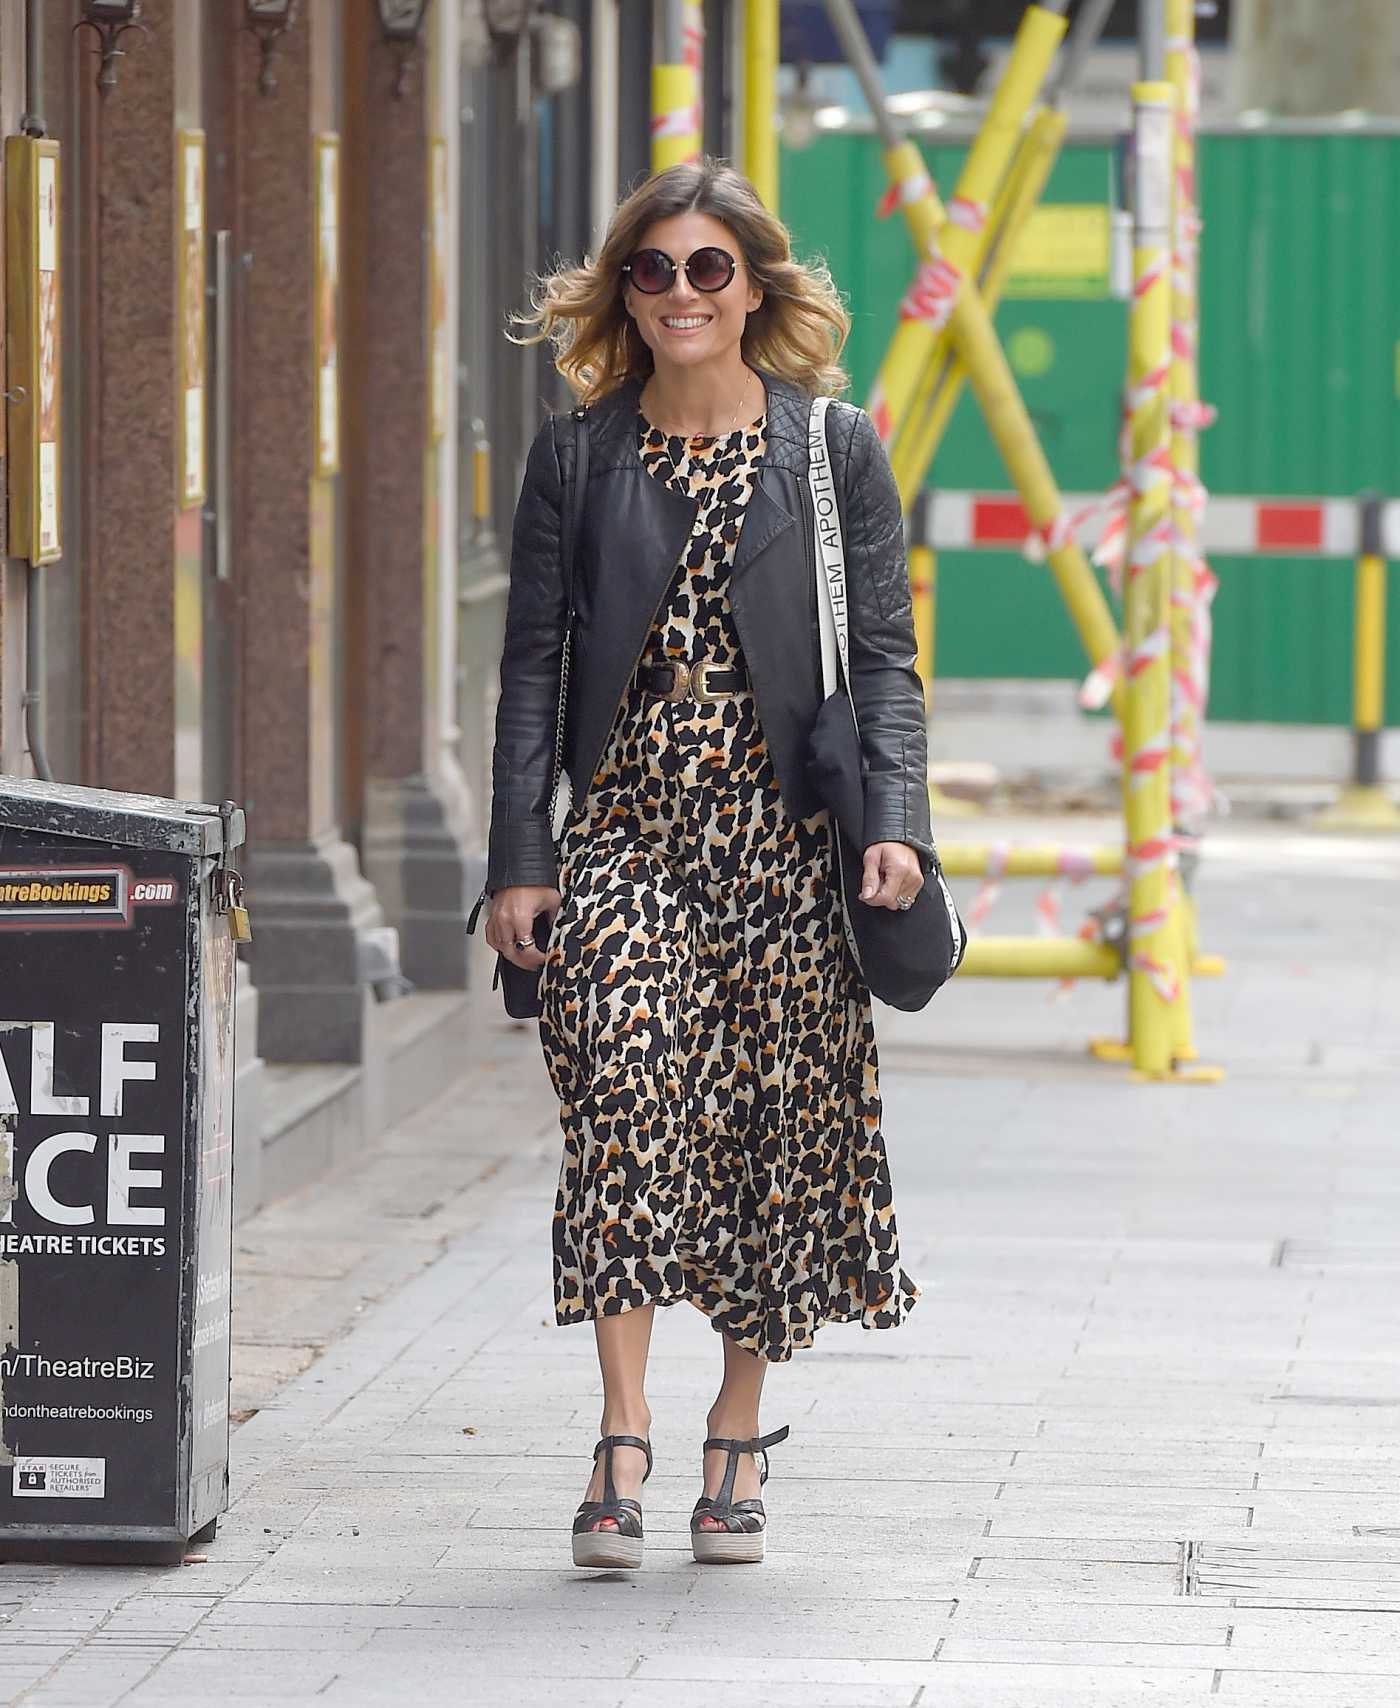 Zoe Hardman in an Animal Print Dress Arrives at the Global Radio Studios in London 06/07/2020